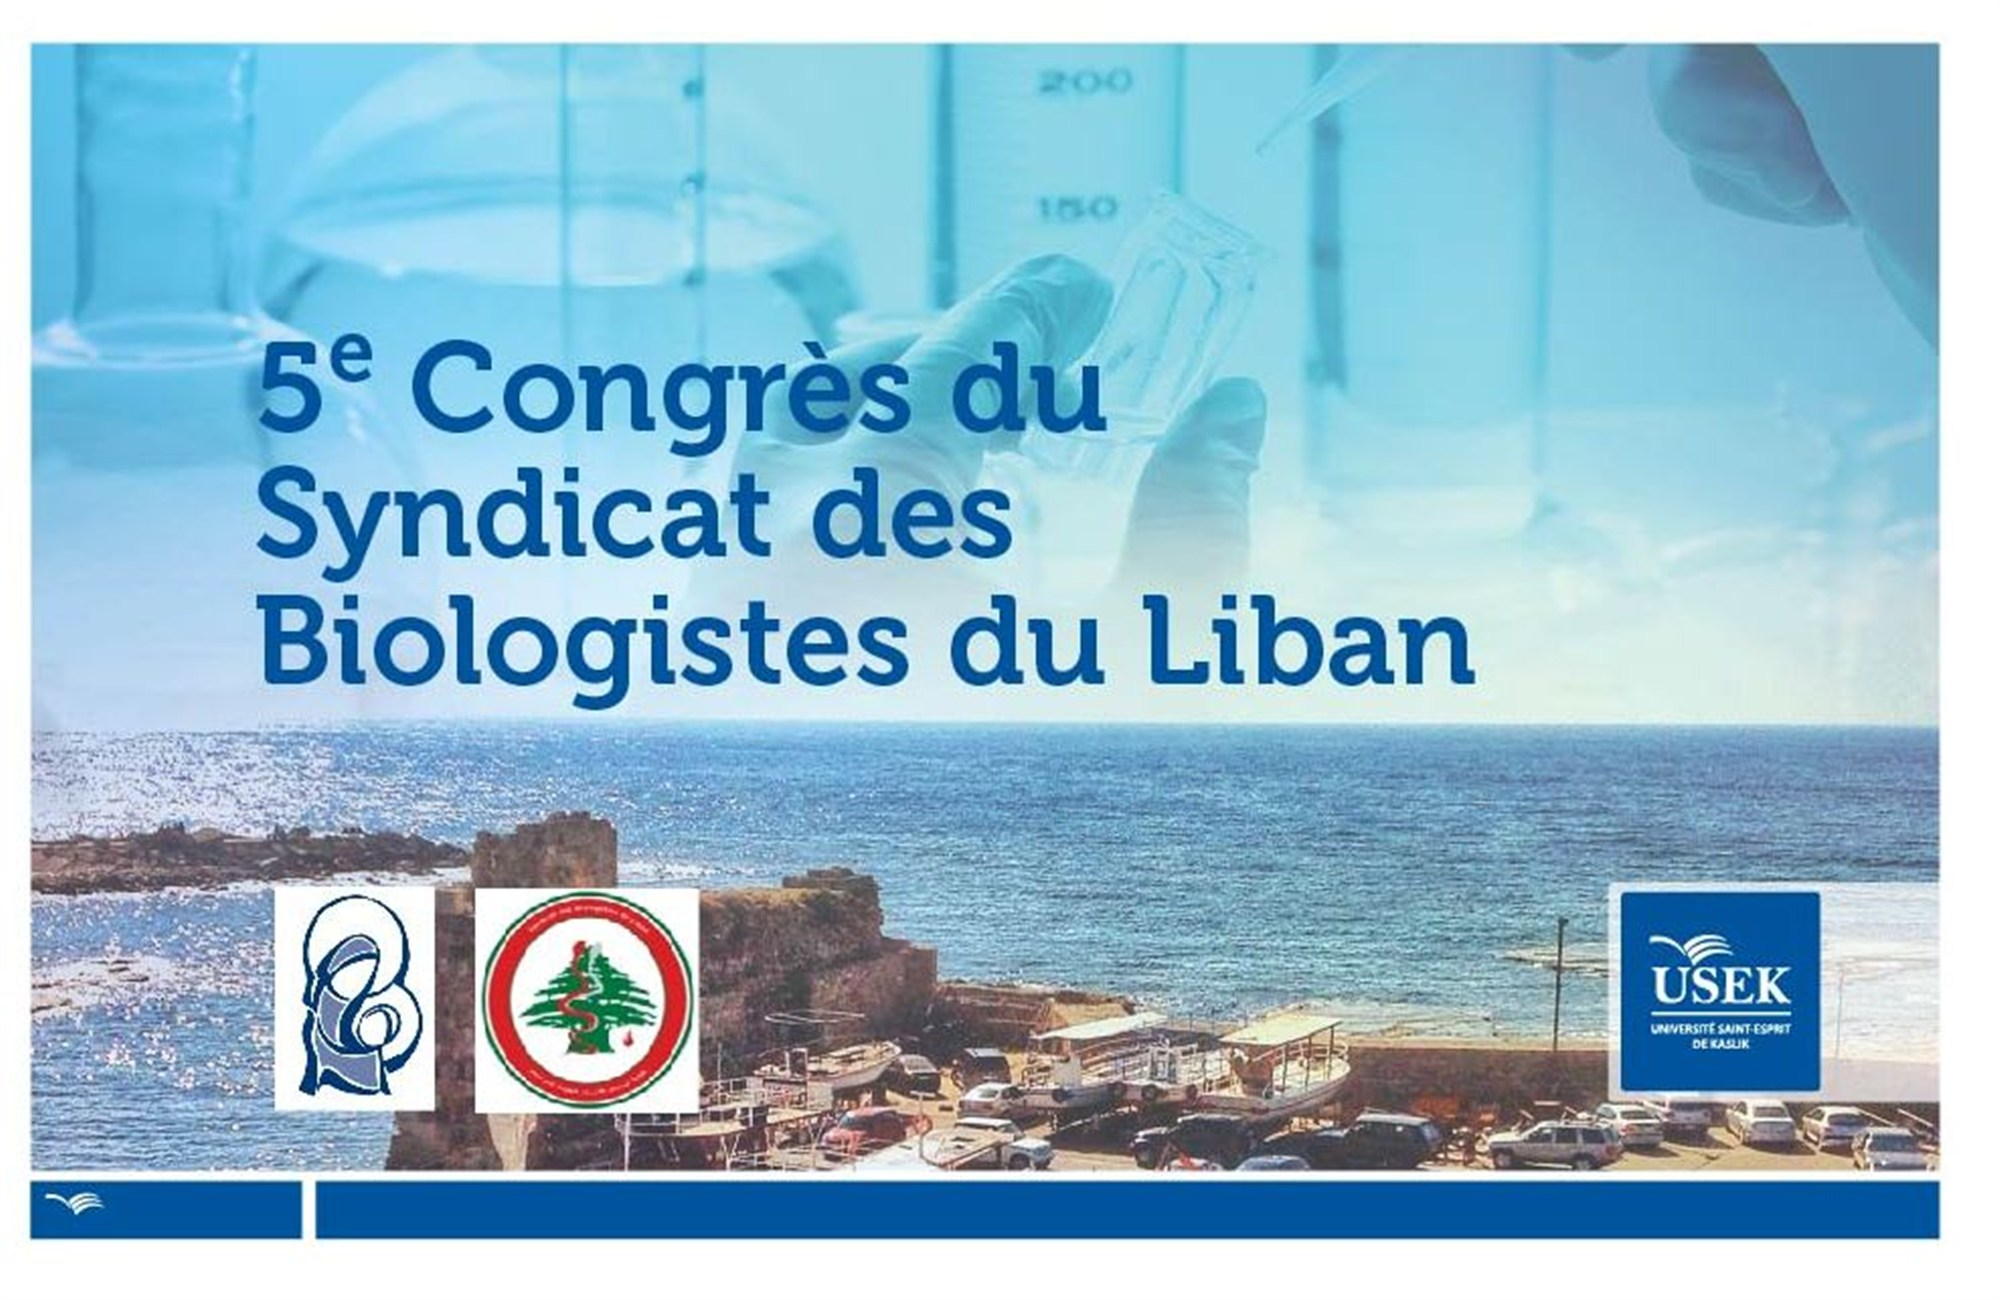 5th Congress of the Union of the Lebanese Biologists